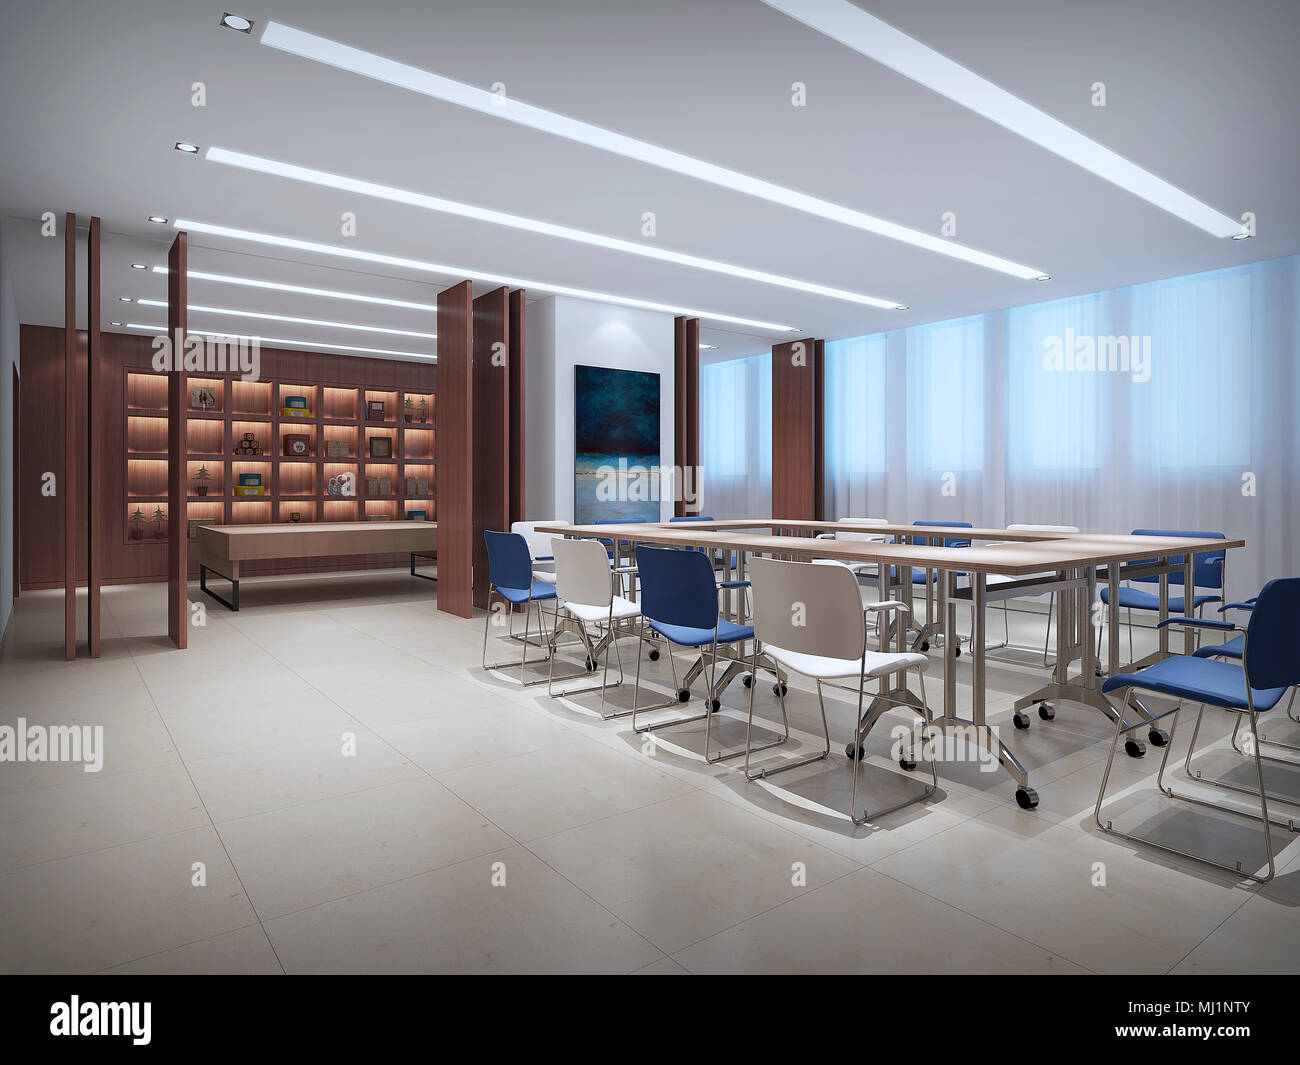 Computer graphics conference room - Stock Image